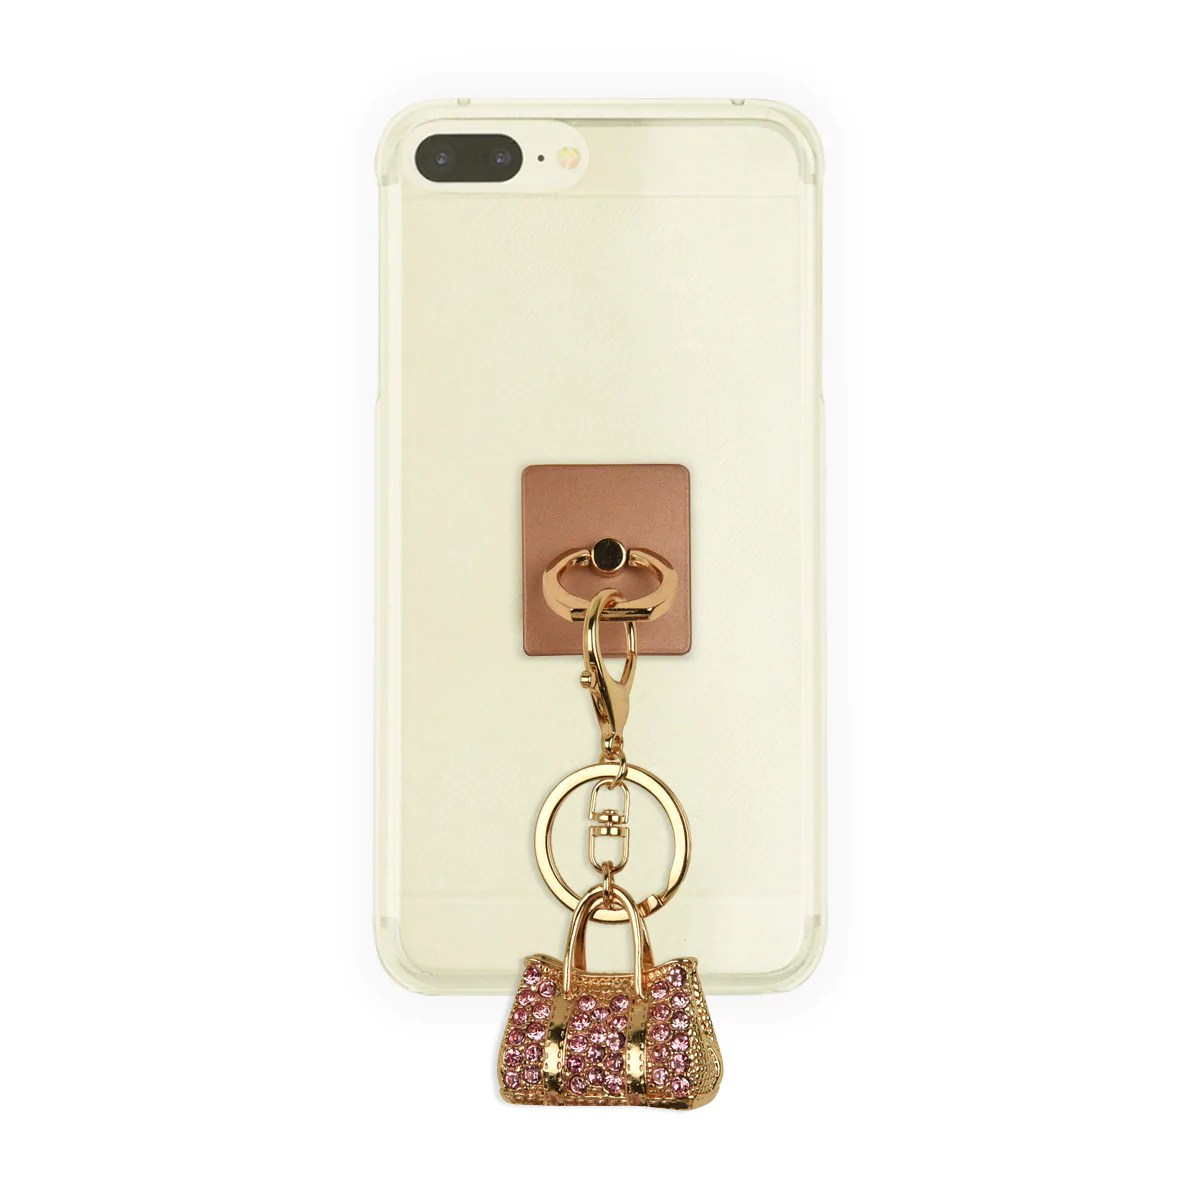 Iorigin Ring Grip Kick Stand Gold Bag With Acrylic Pink Diamonds Key Chain For Mobile Phones Tablets